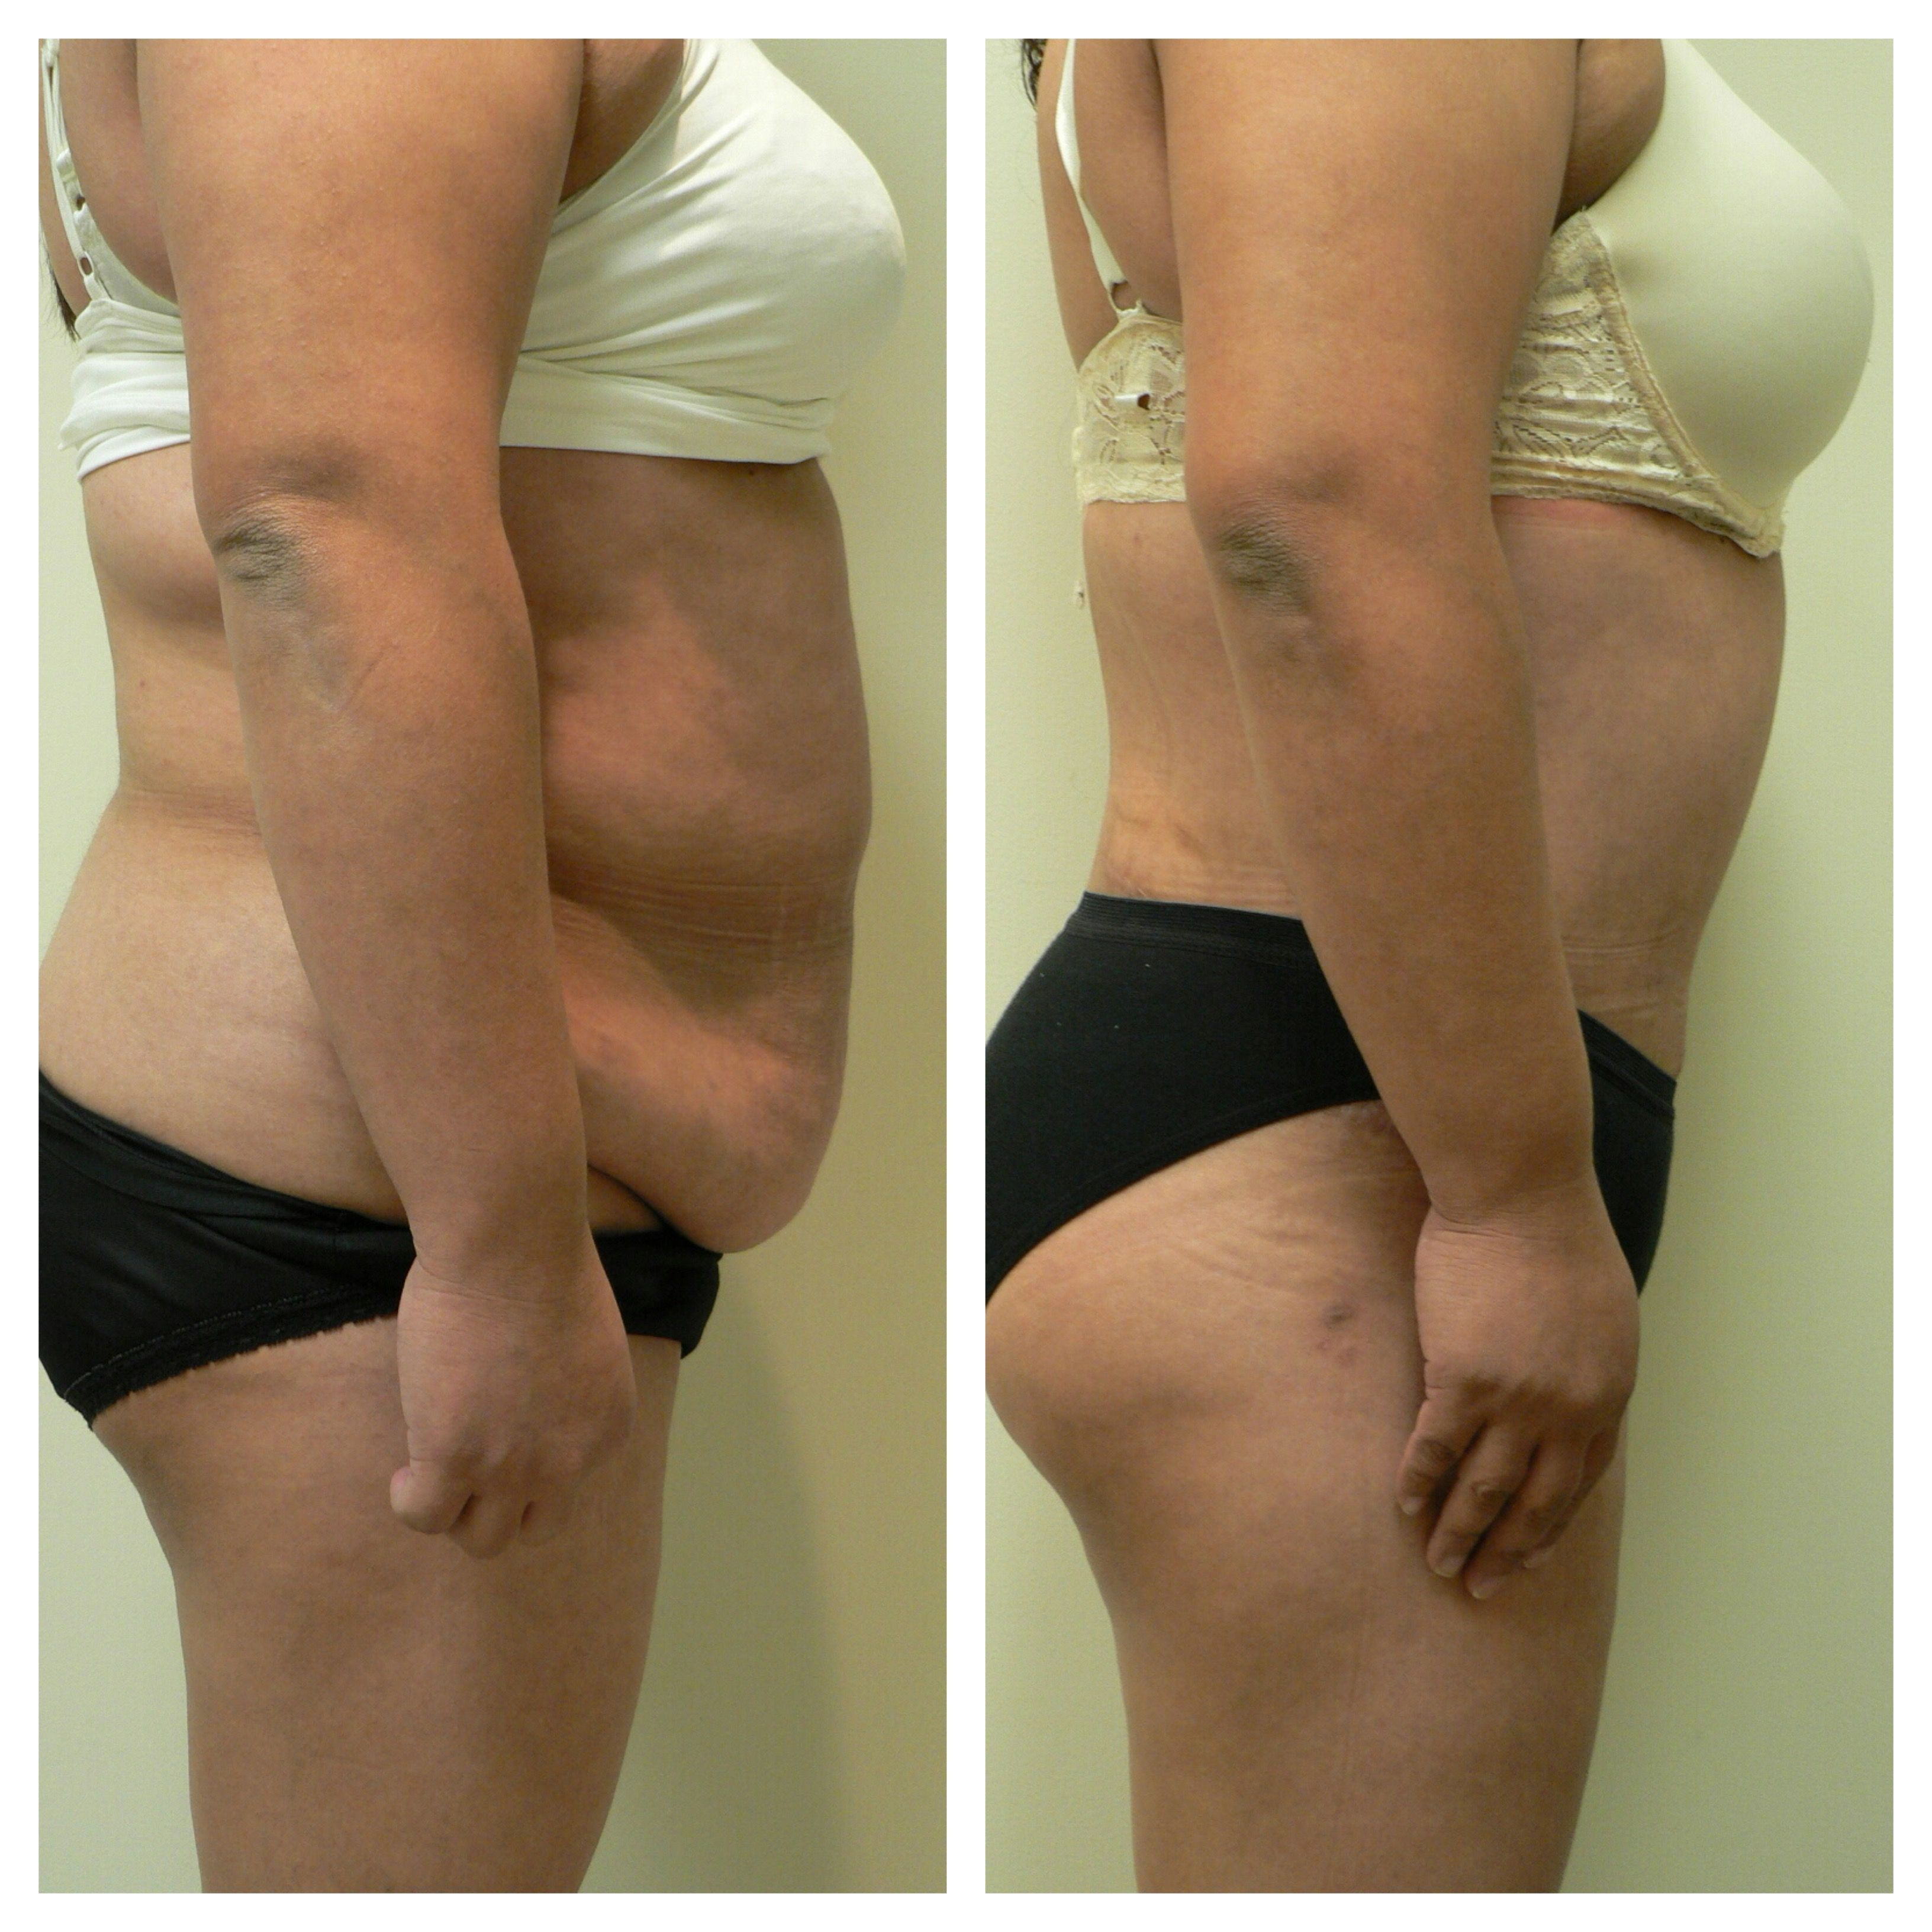 Before After Of Body Contouring After Major Weight Loss